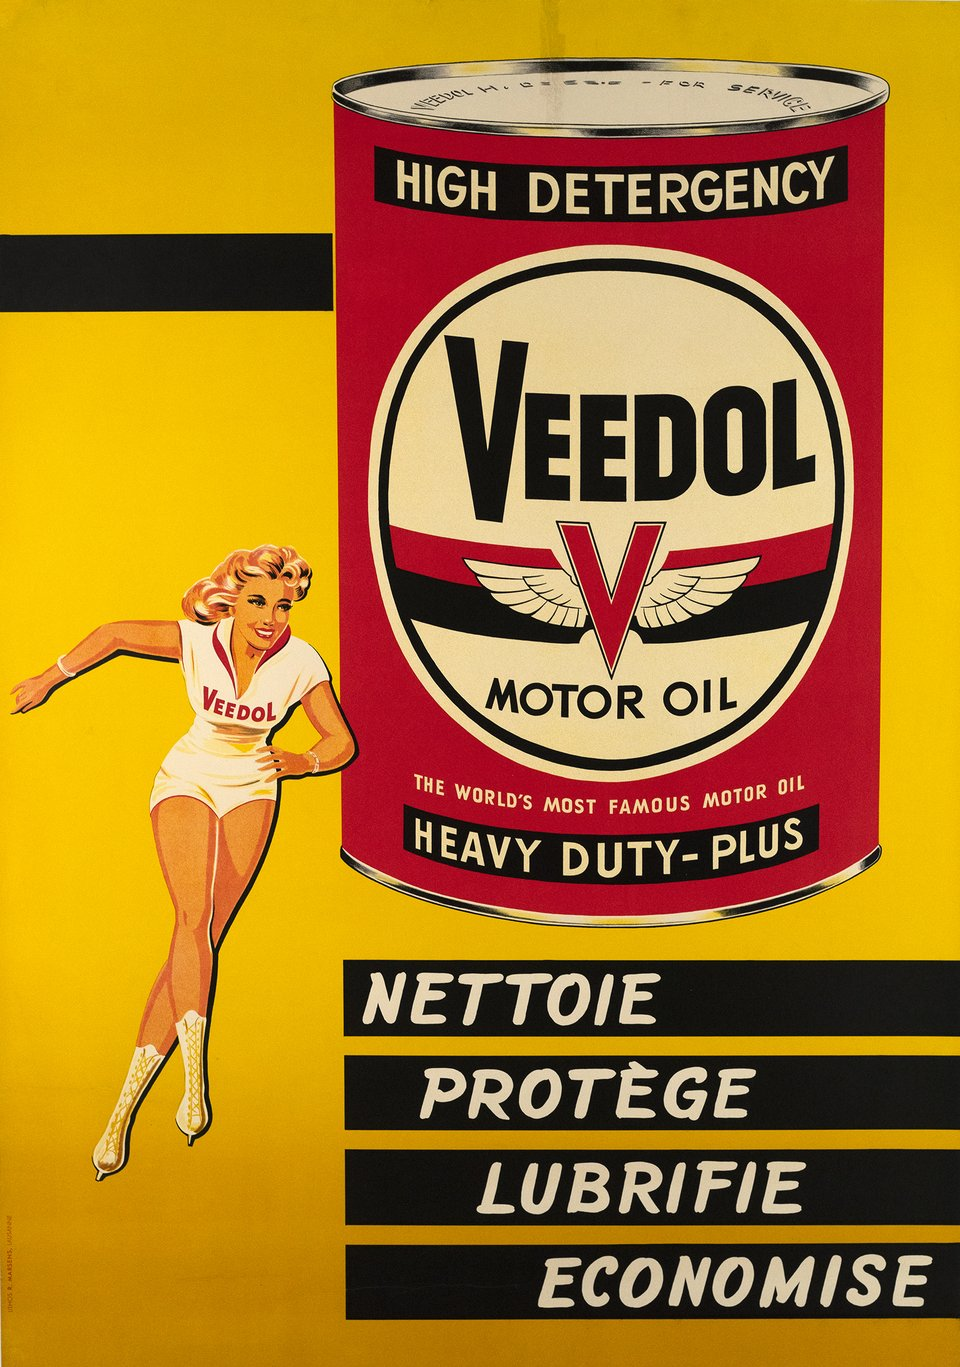 Veedol Motor Oil, Nettoie, Protège, Lubrifie, Economise – Vintage poster – ANONYME – 1950